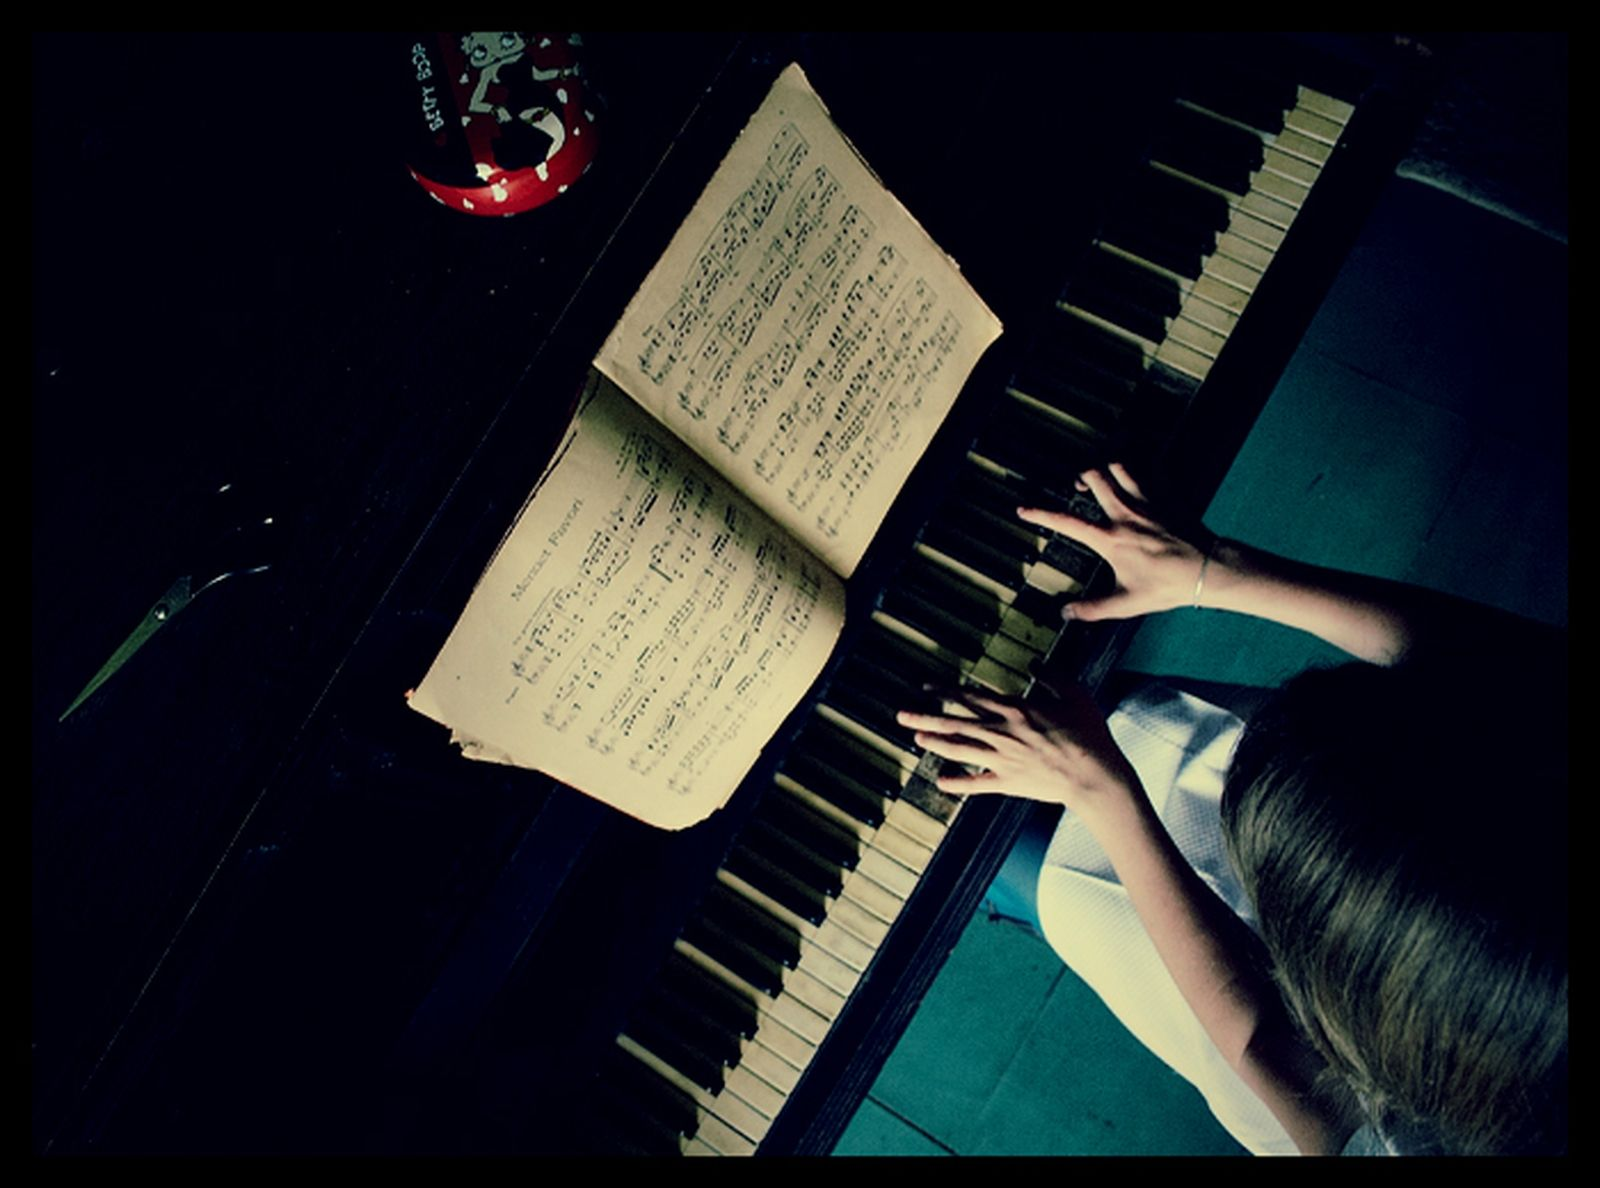 Download Piano Wallpapers Pictures Photos and Backgrounds 1600x1188